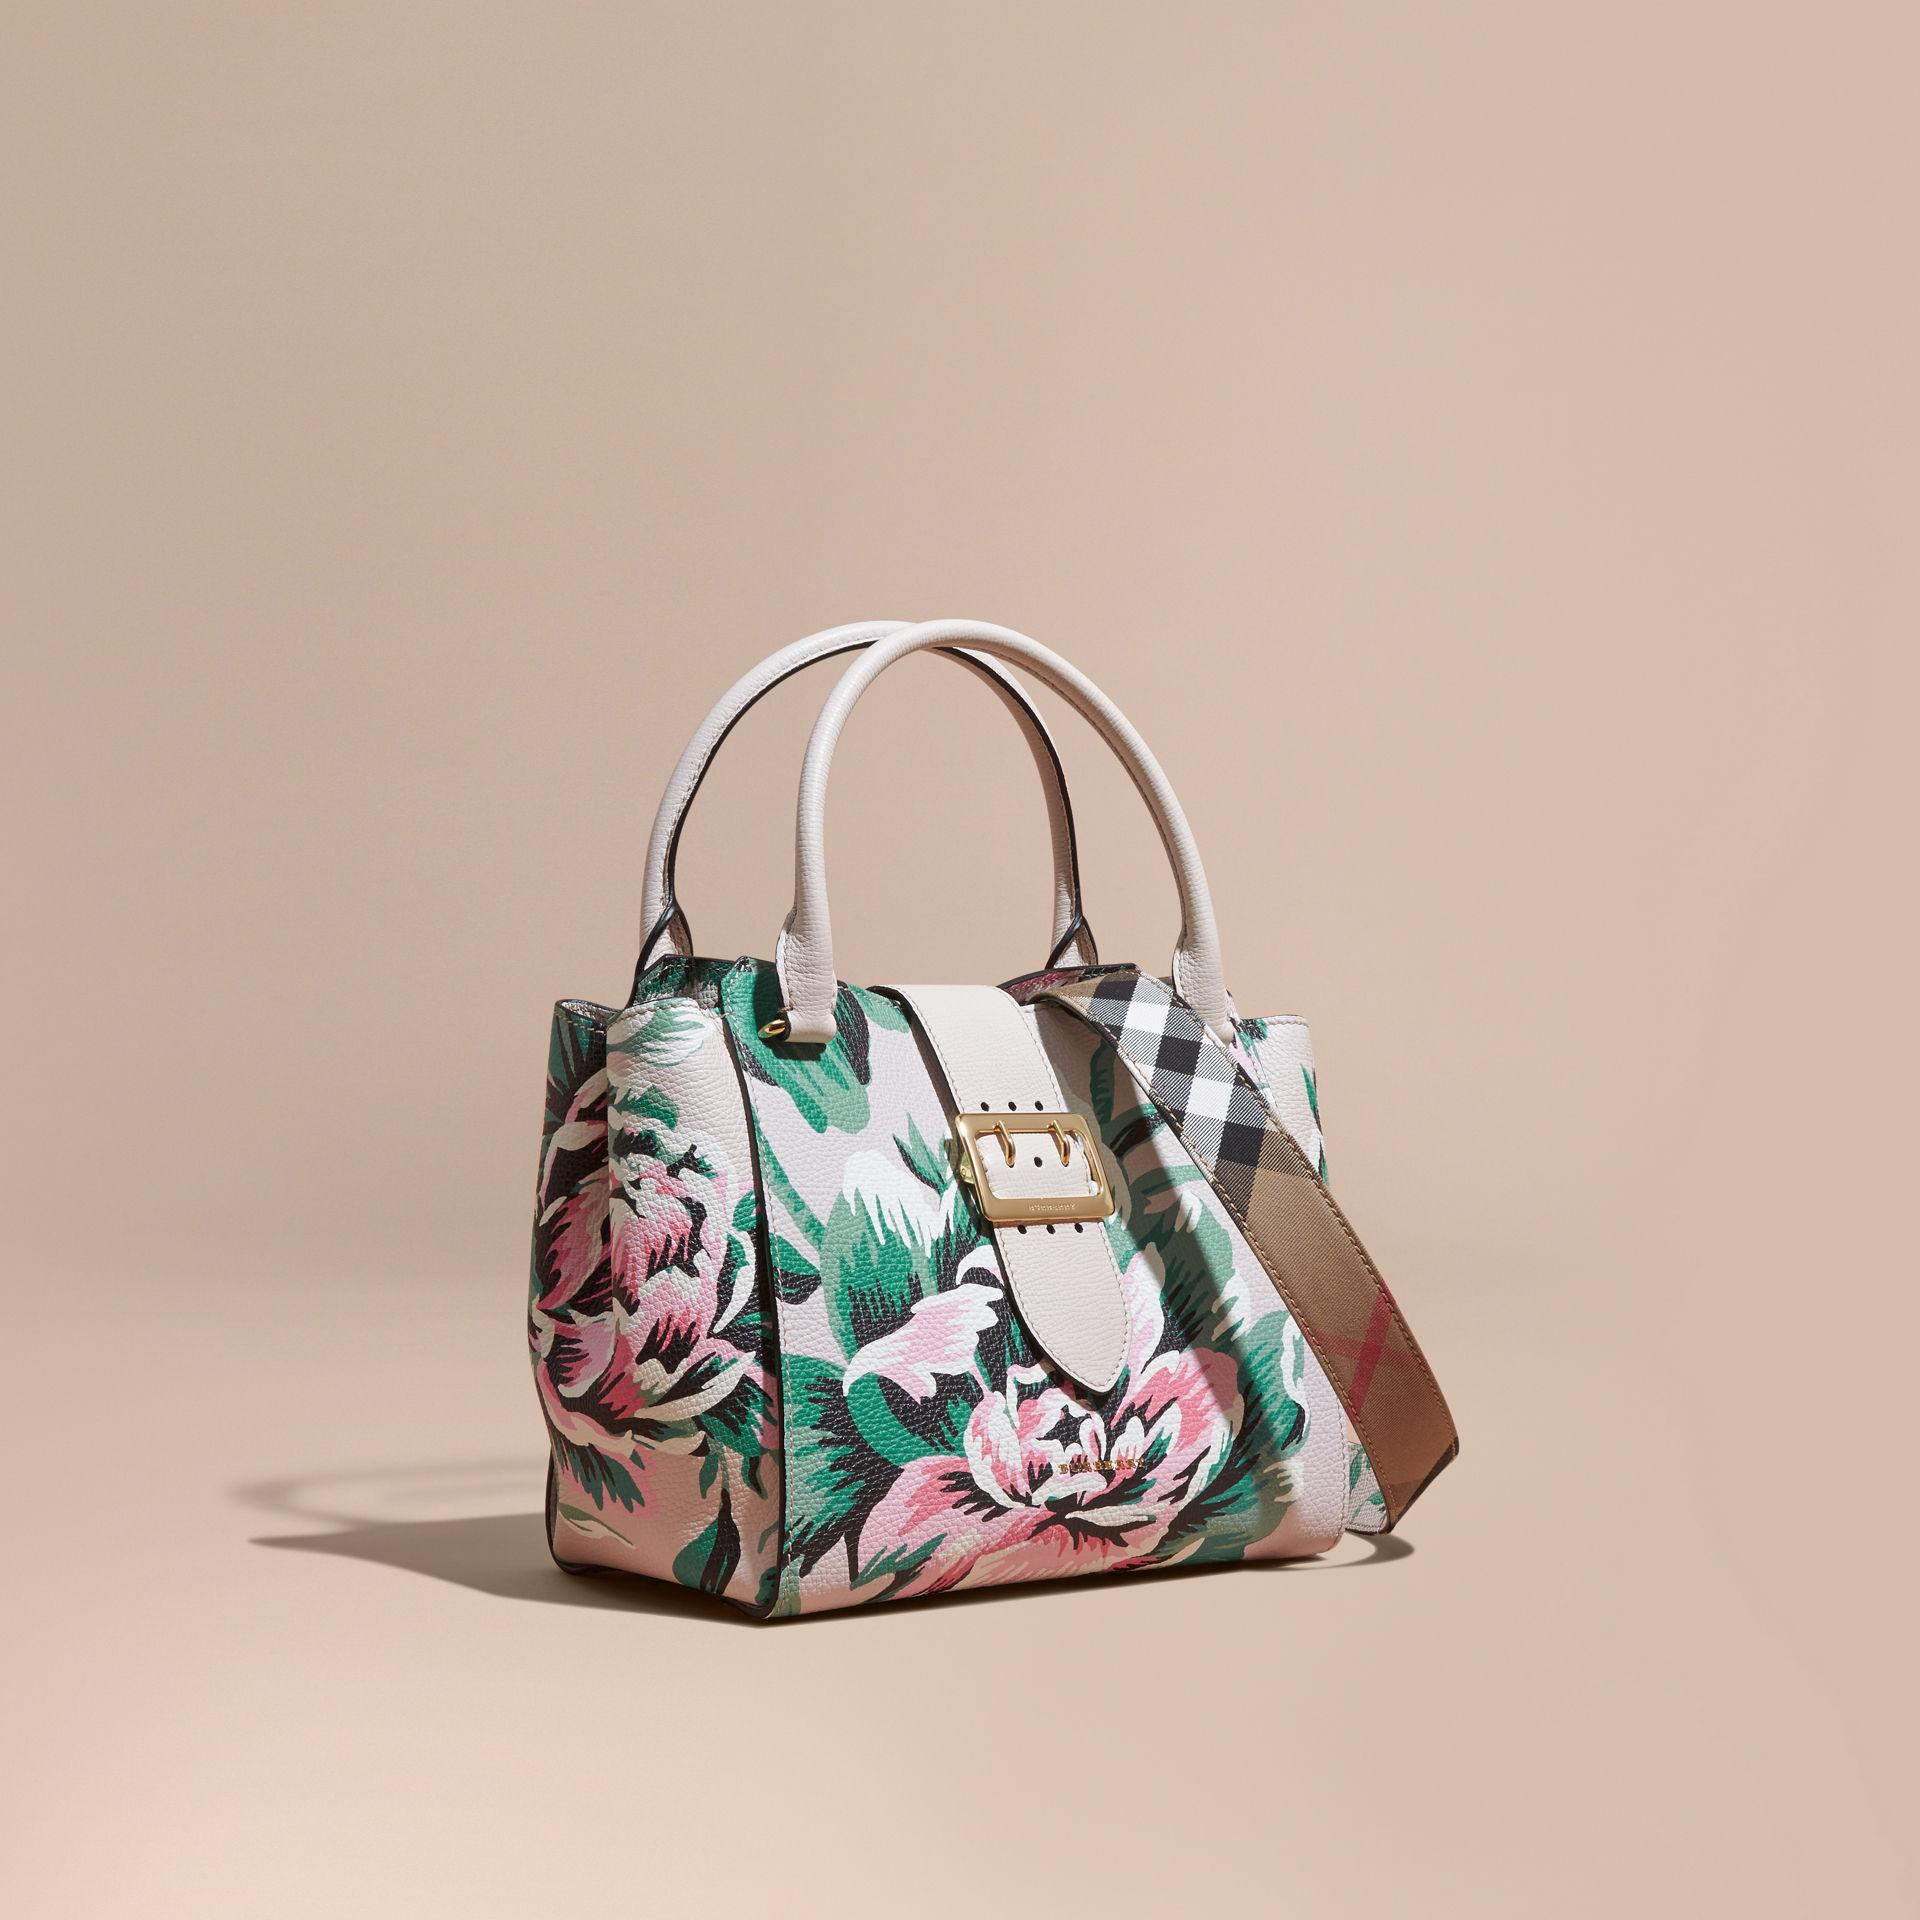 0babb56a5526 Burberry The Medium Buckle Tote In Peony Rose Print Leather Natural ...